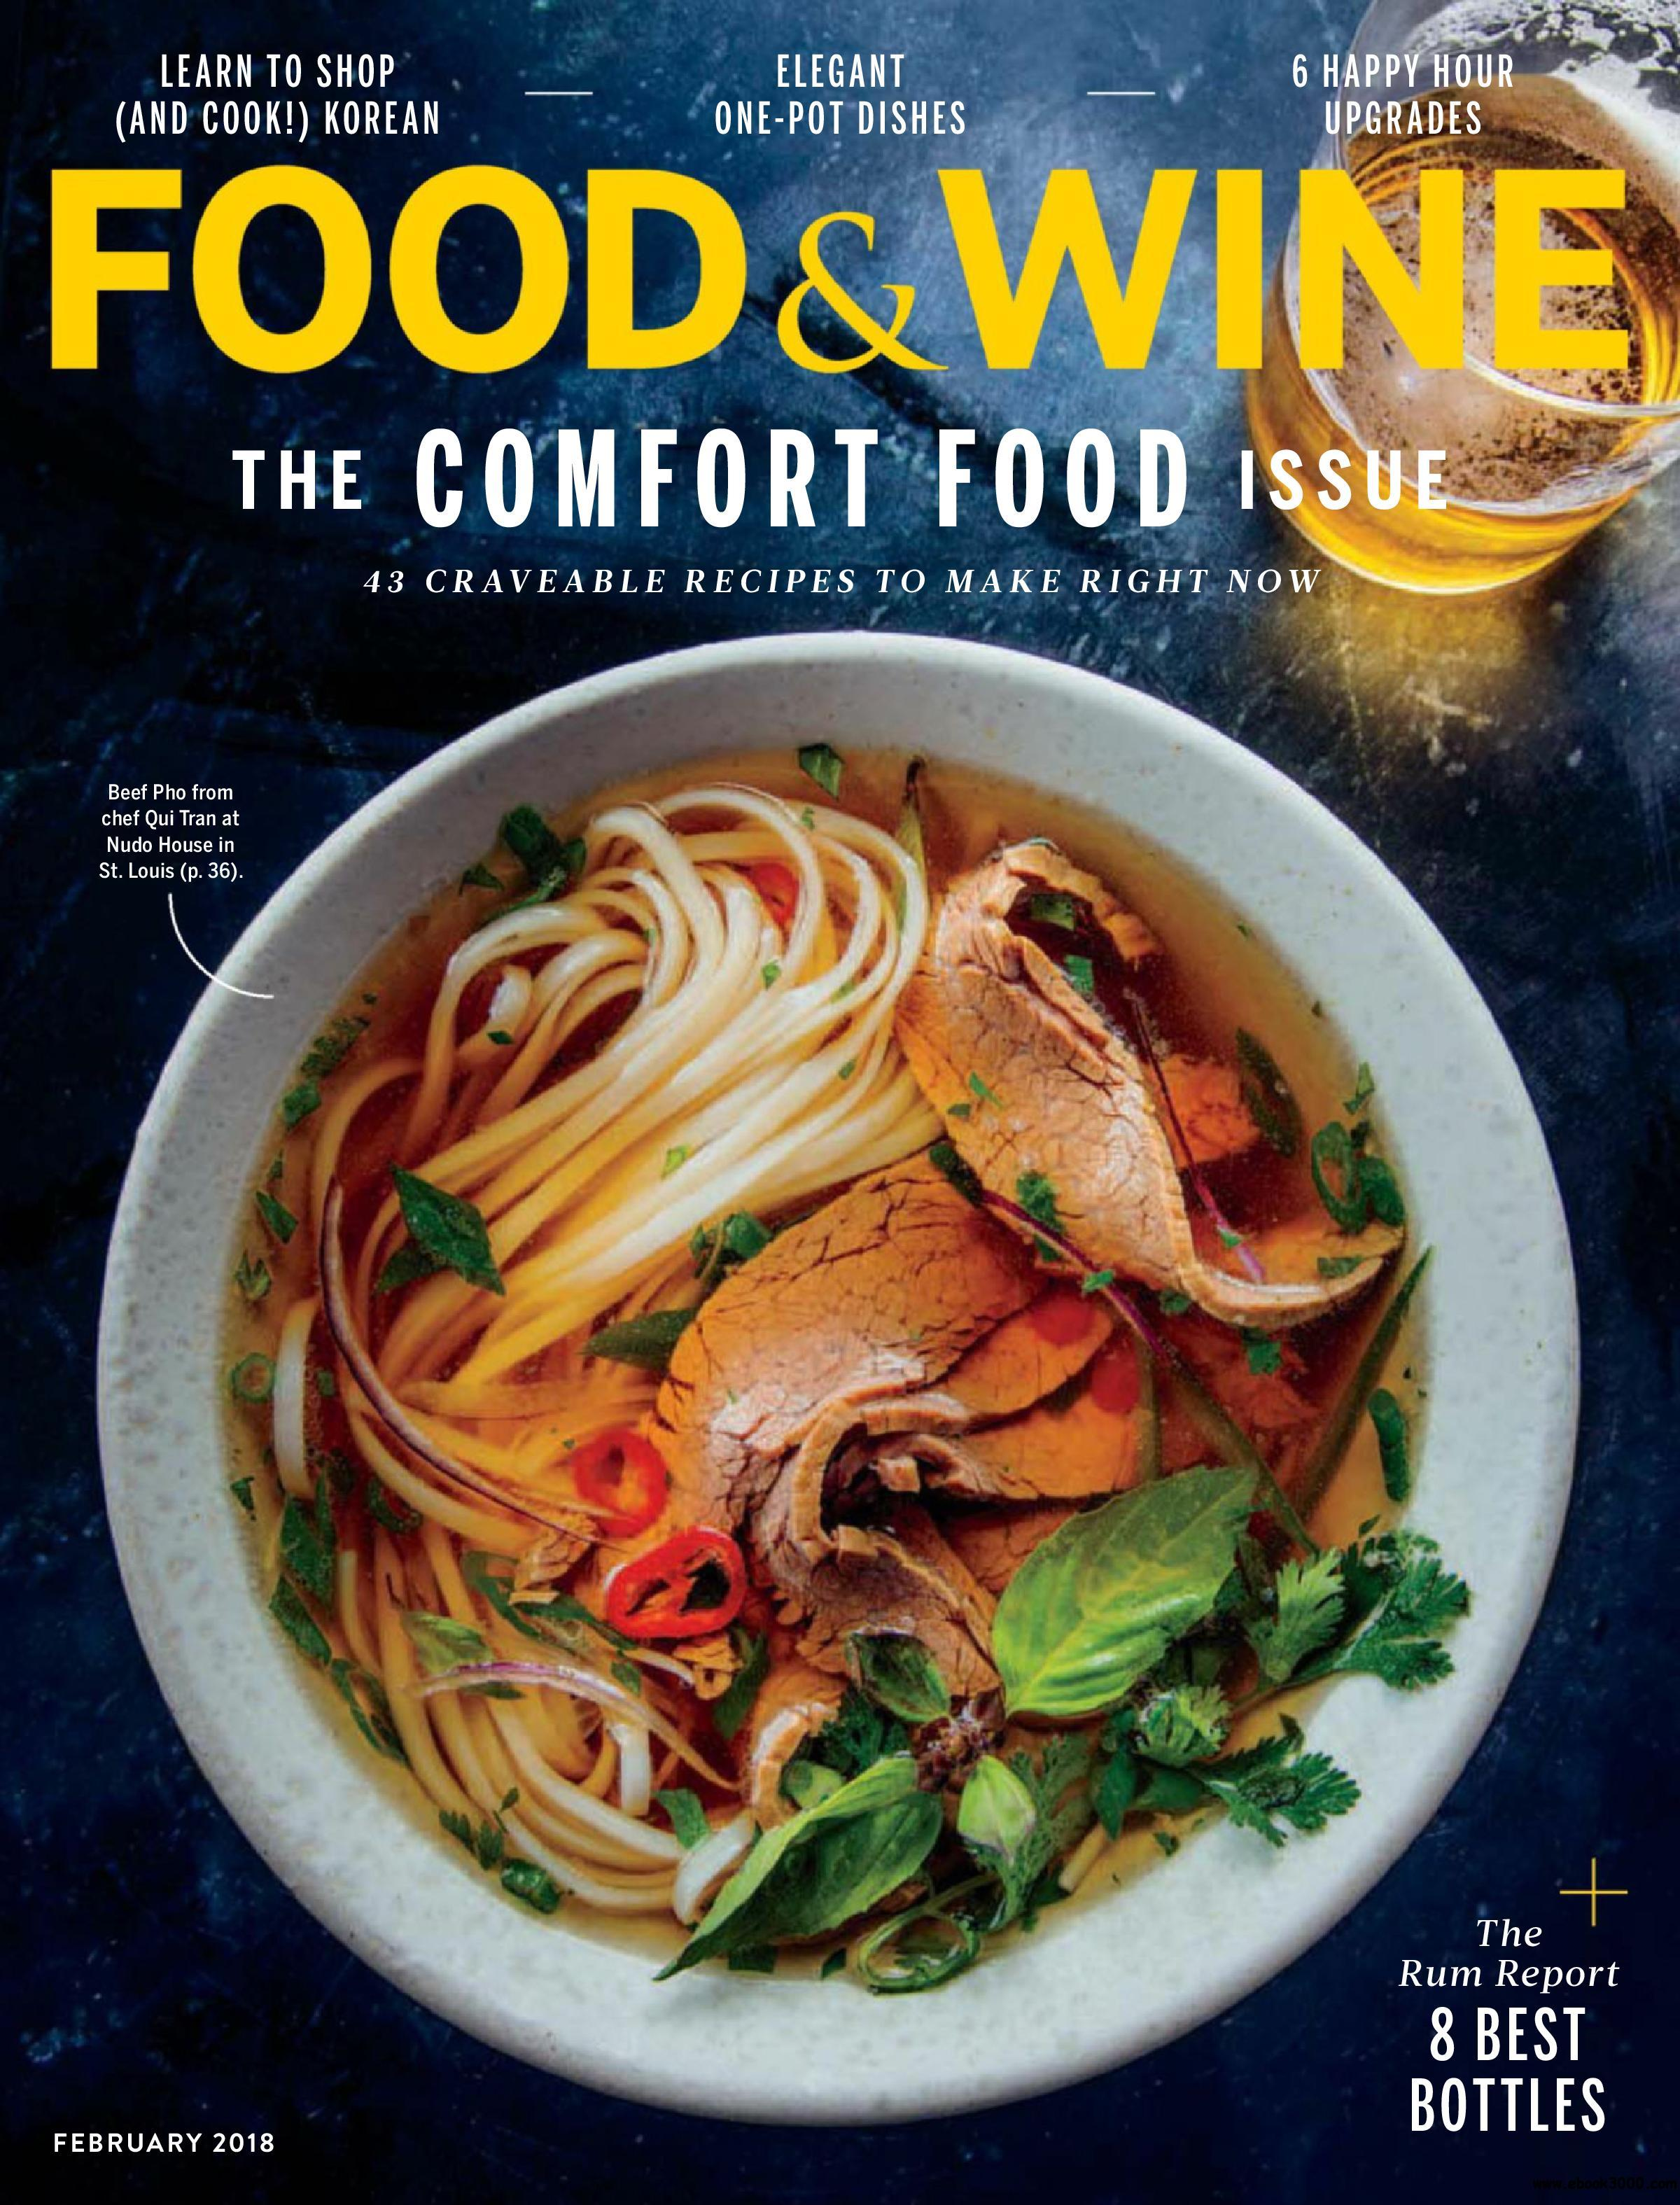 Food wine usa february 2018 free ebooks download food wine usa february 2018 forumfinder Choice Image